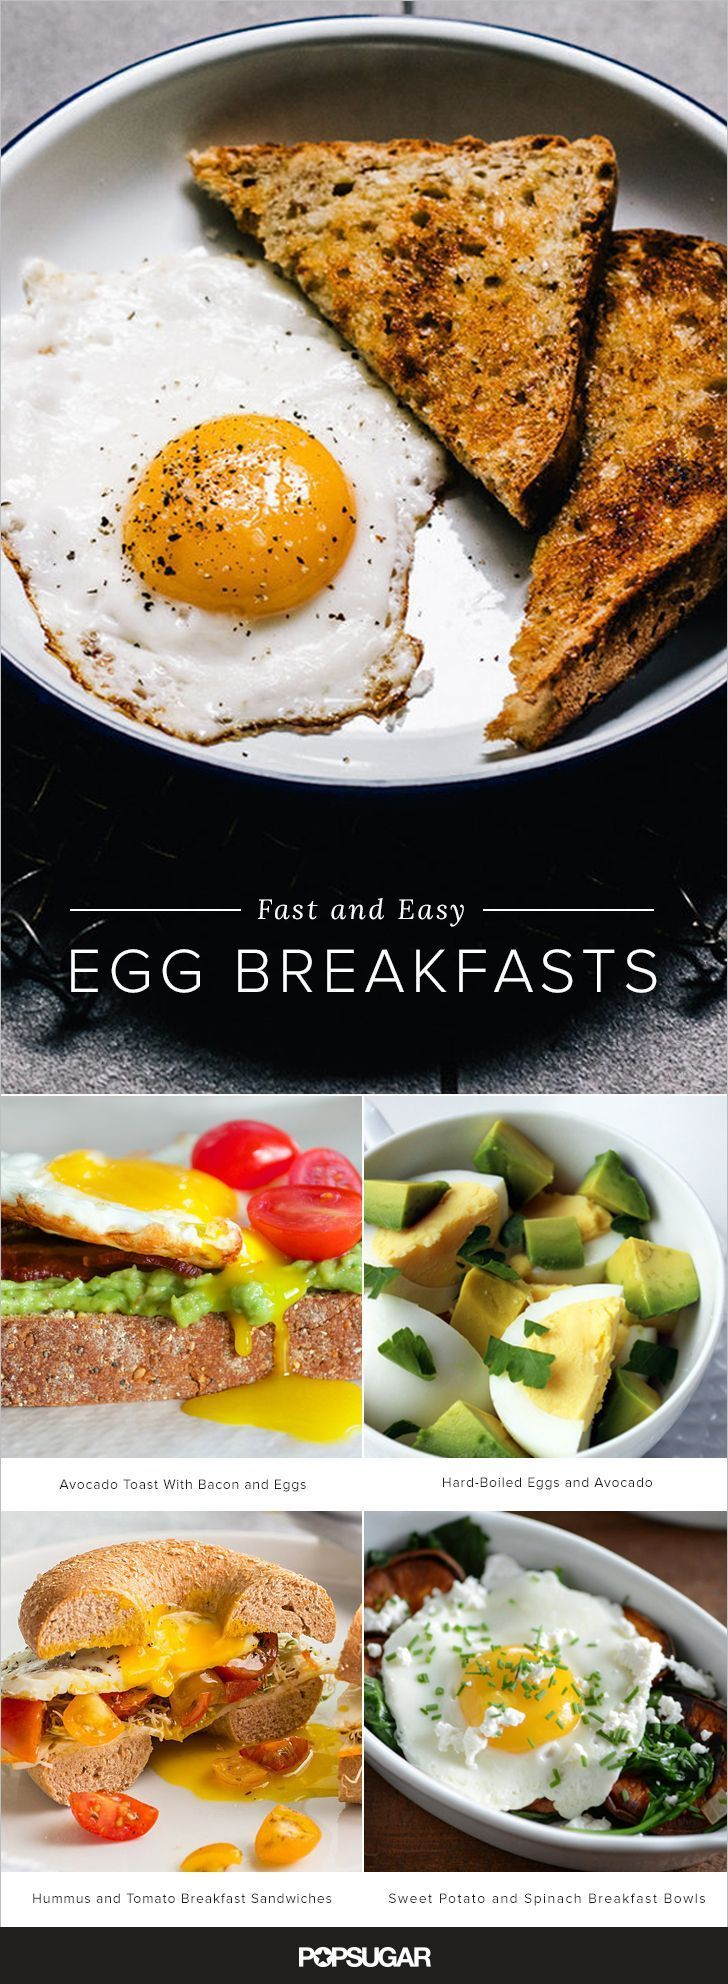 What breakfast staple is delicious, is (typically) fast to cook, and will keep you full until lunch? The egg, of course. Keep reading for more than 20 eggy breakfasts that can be made on a busy work day. Most are super speedy and require no advance prep; for the rest, we've included make-ahead tips (e.g. hard-boiling an egg the night before) so you can get your egg on stress-free in the morning.